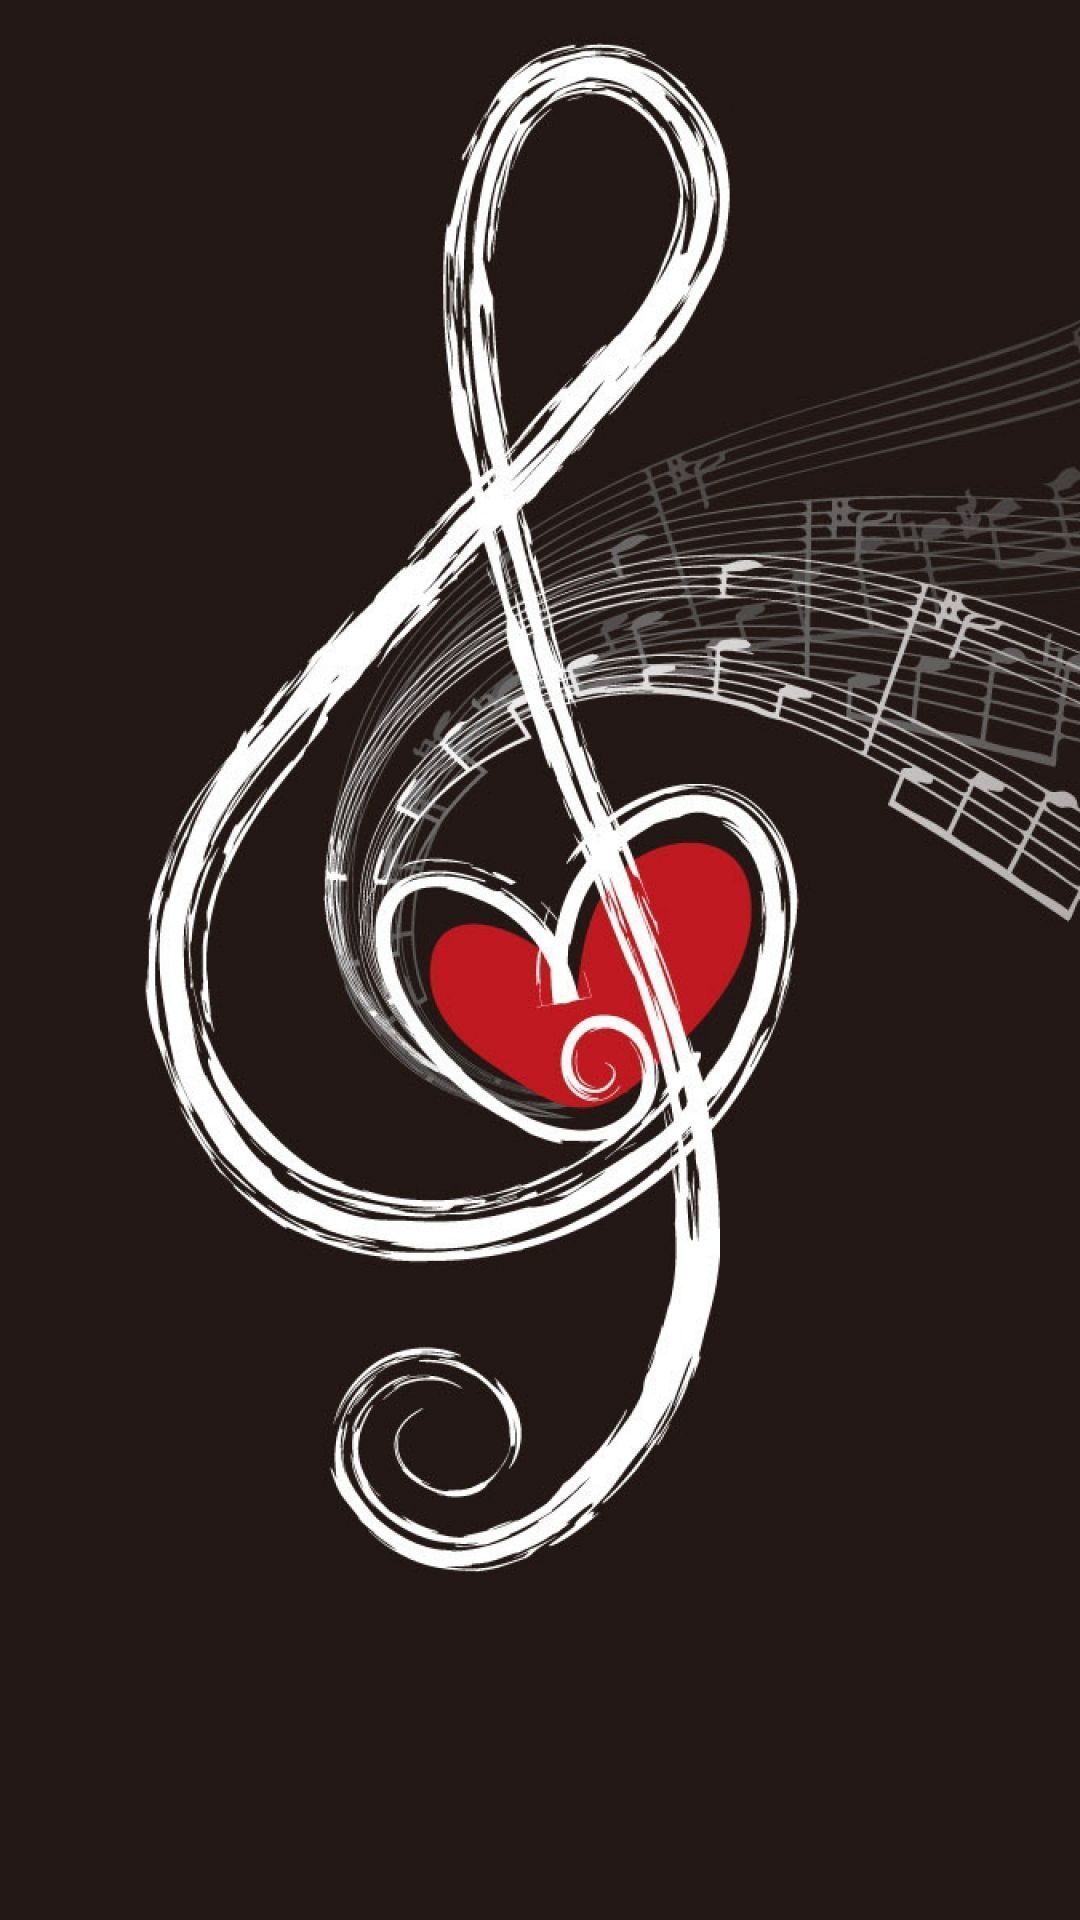 wallpaper 1080x1920 treble clef drawing chalk sony